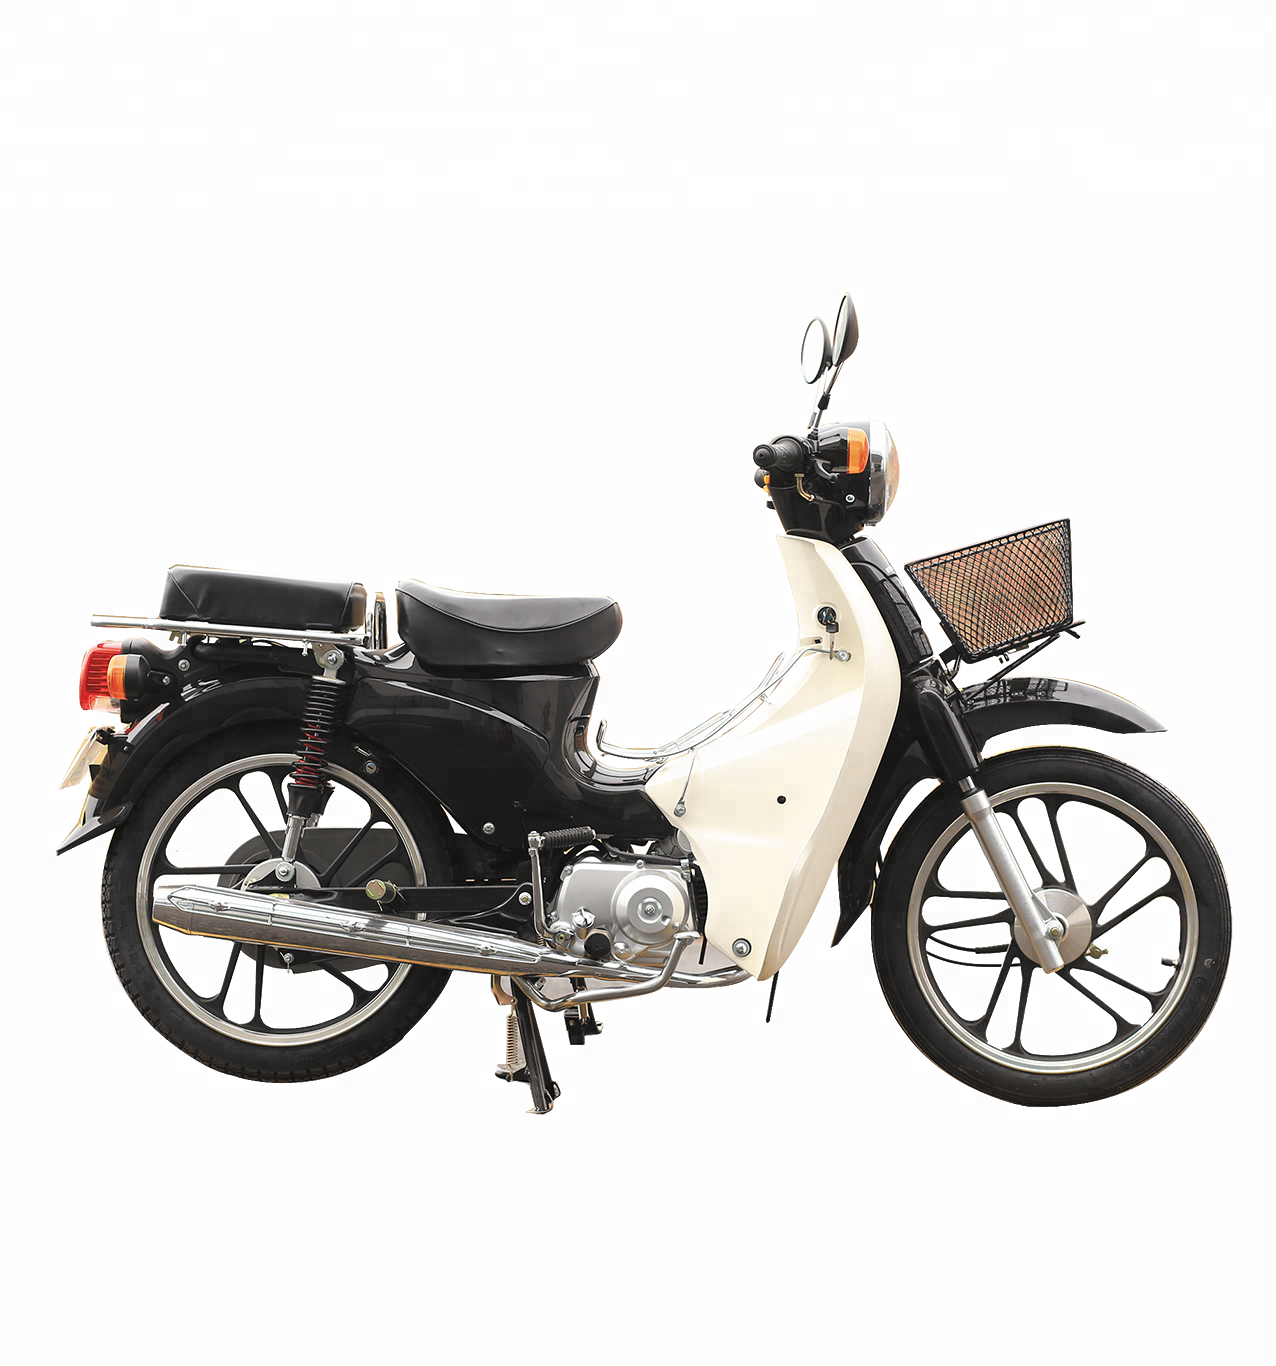 High Quality 125cc motorcycle 110cc motorcycle hot sale cub